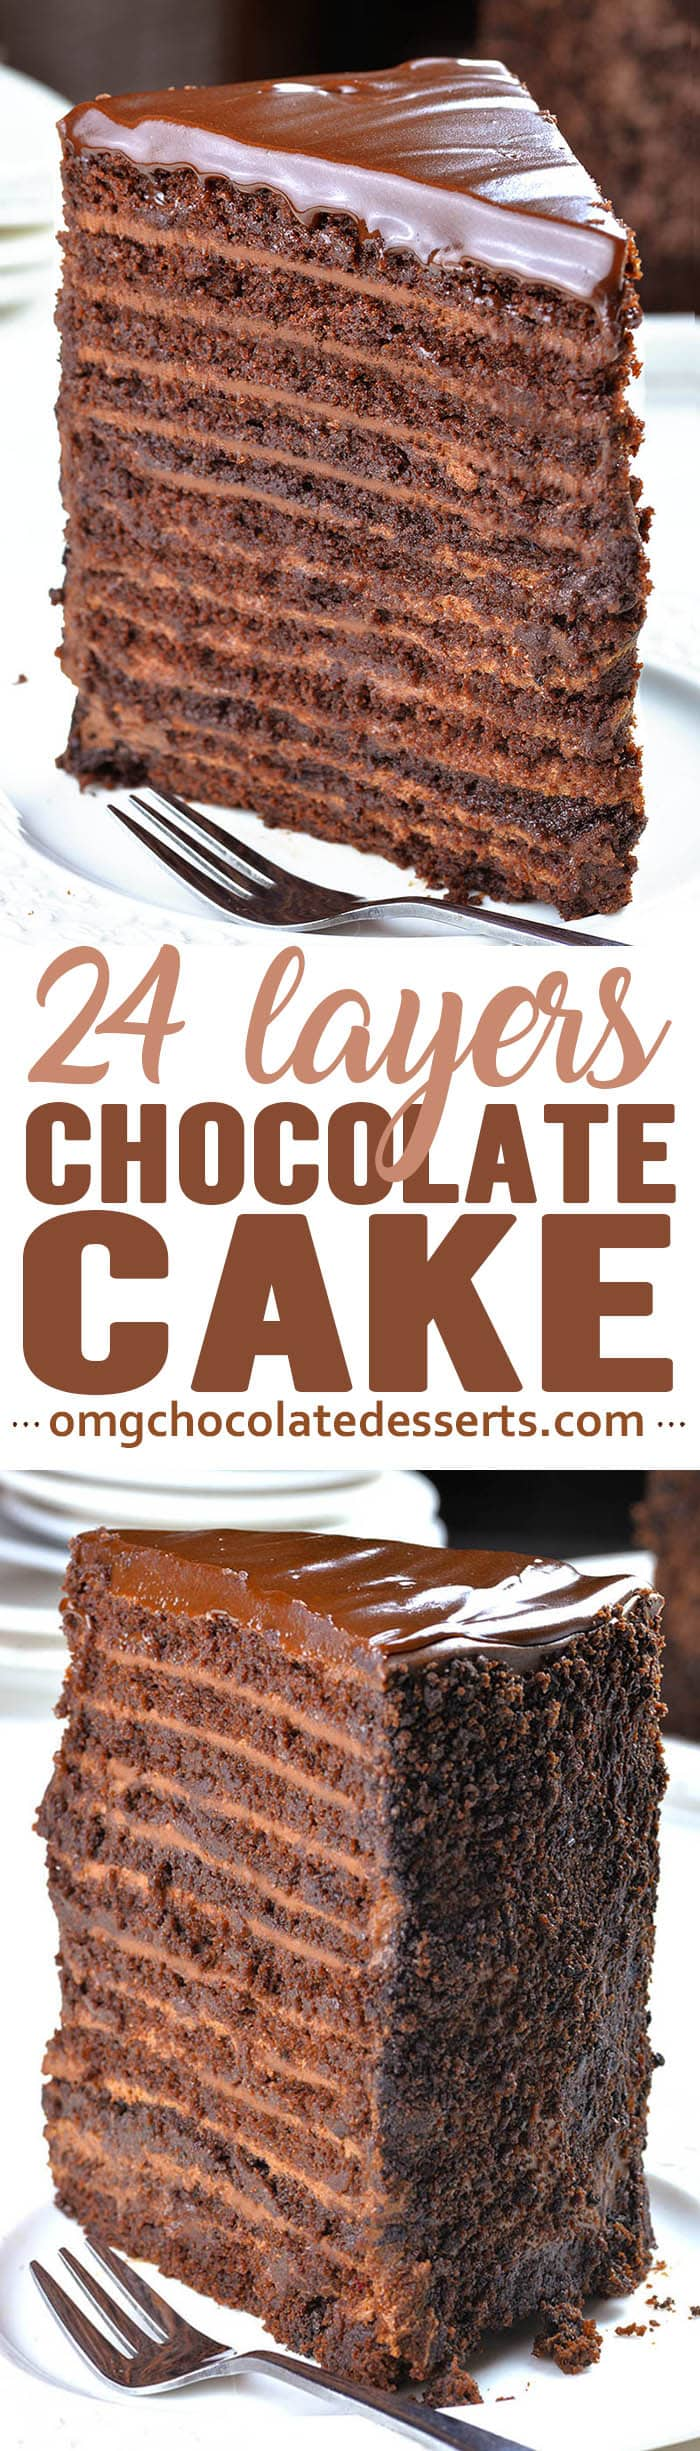 Chocolate Cake with 12 layers of smooth chocolate filling, 12 layers of moist and rich chocolate cake, topped off with a layer of silky semisweet chocolate ganache is the most decadent chocolate cake I've ever tried!